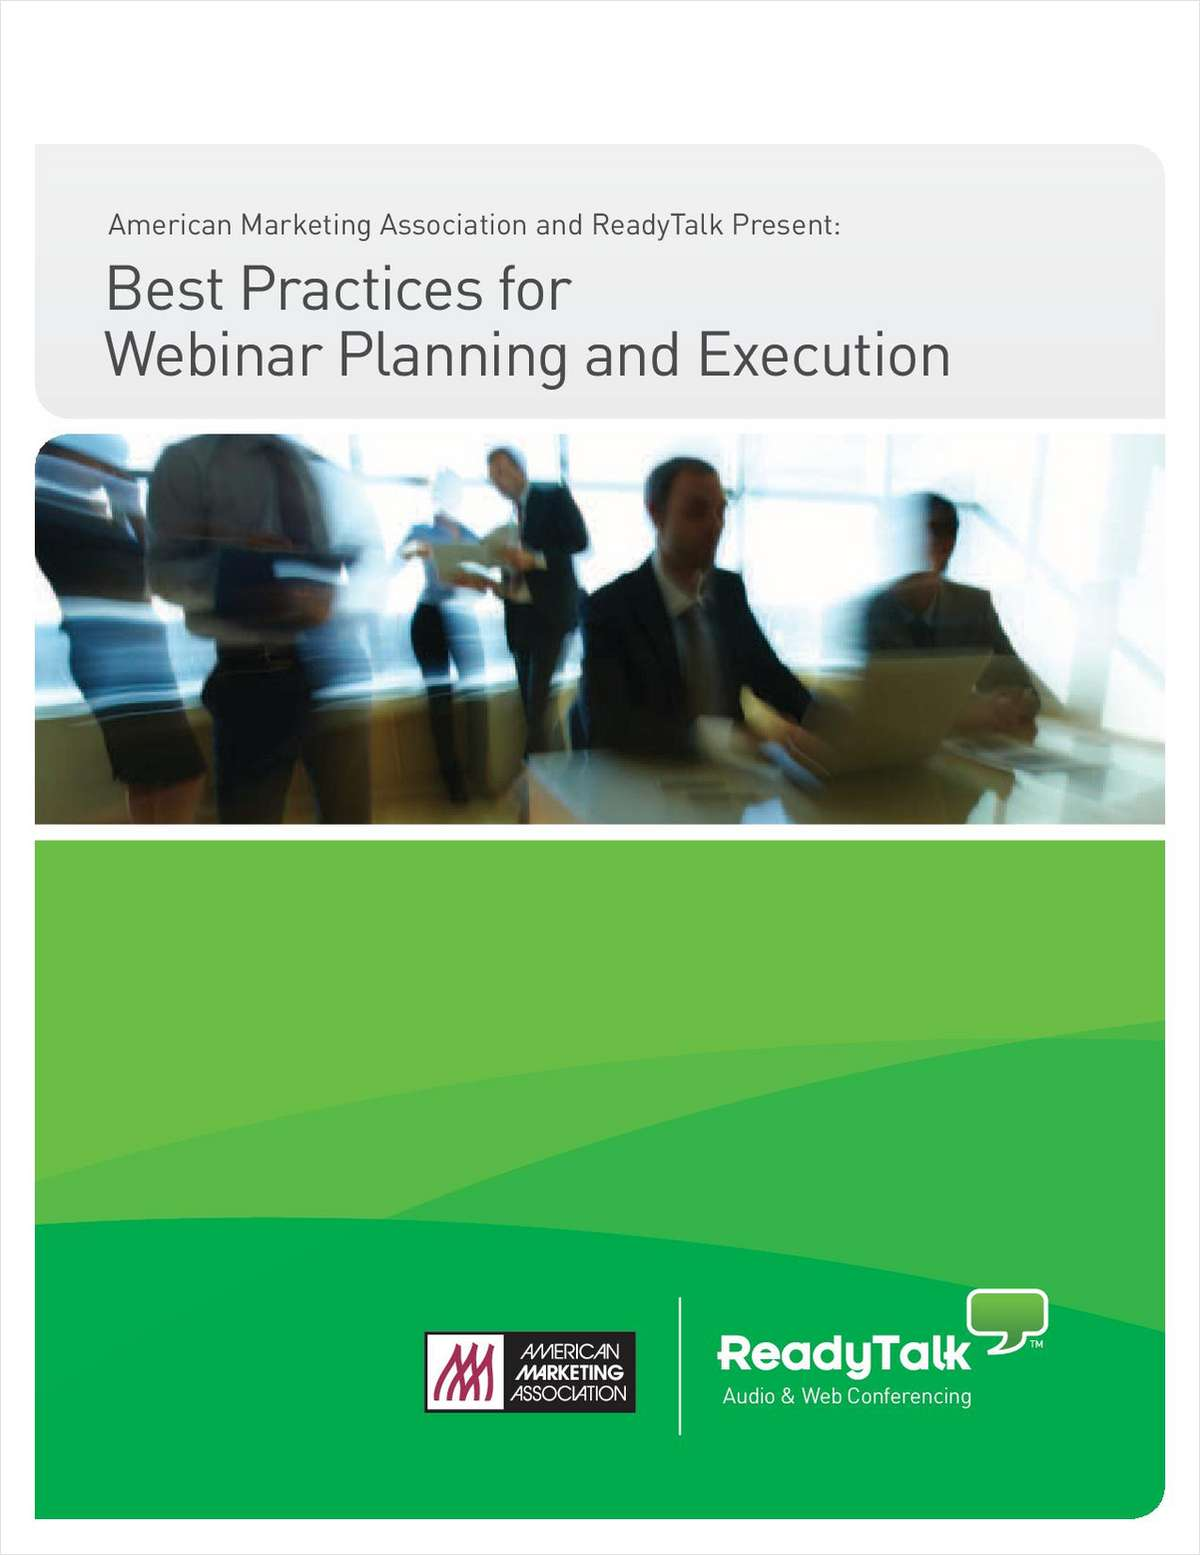 American Marketing Association and ReadyTalk Present: Best Practices for Webinar Planning and Execution